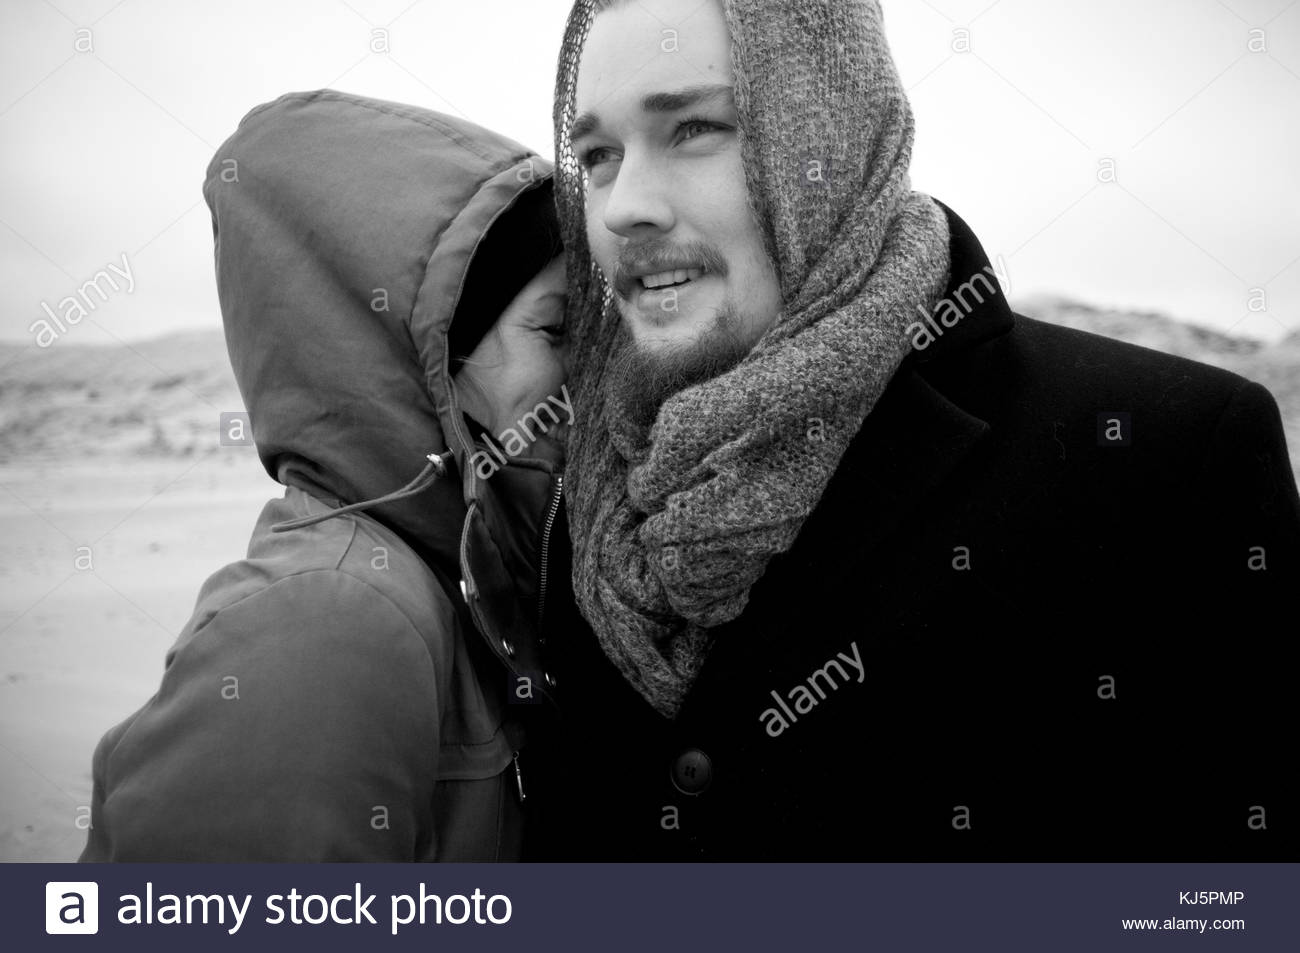 Happy couple in winter clothing - Stock Image